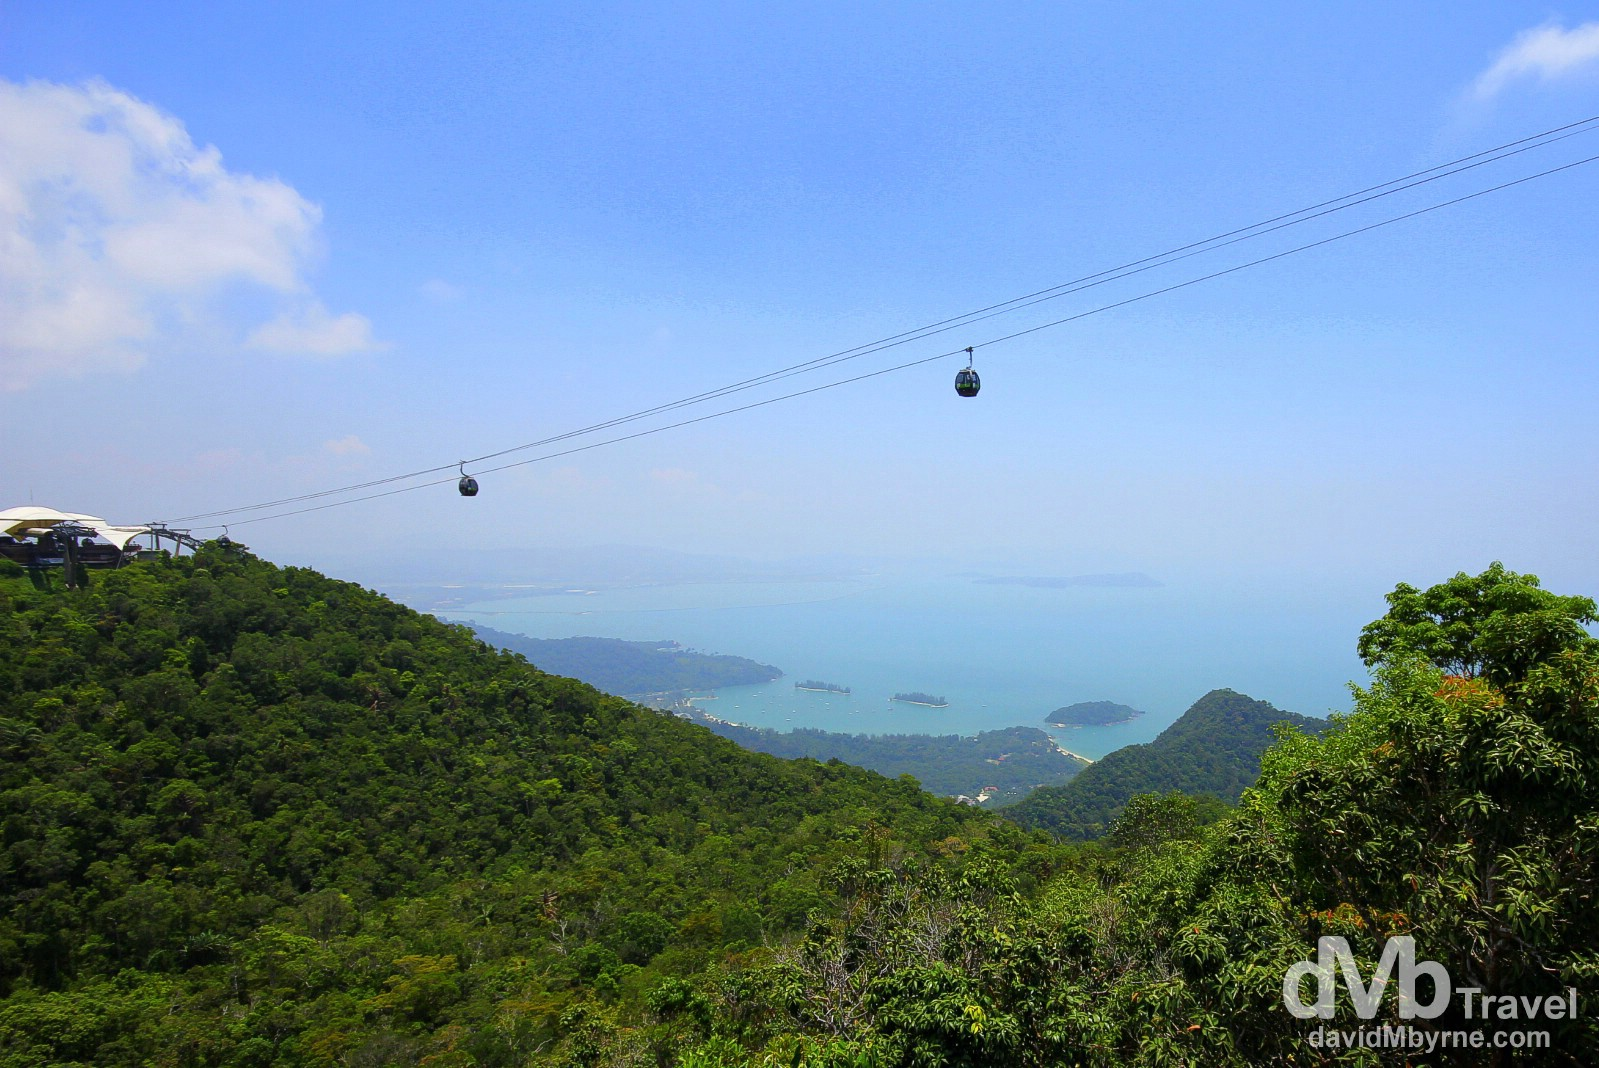 A shot of the west of Langkawi Island from the Top Station of the Langkawi Cable Car. The Cable Car, which opened in 2003, is 2.2km long, spans a section of the island's Machincang mountain range & has 3 stations: Base, Middle (seen to the left, 650m above sea level) & Top (708m above sea level), above which is a viewing platform from where I took this picture. The visibility on this day was very poor - I had to crank the saturation in this & the next picture to show any kind of detail of the surrounding jungle-clad landscape & distant seascape. Gunung Machinchang, Langkawi Island, Malaysia. March 22nd 2012.